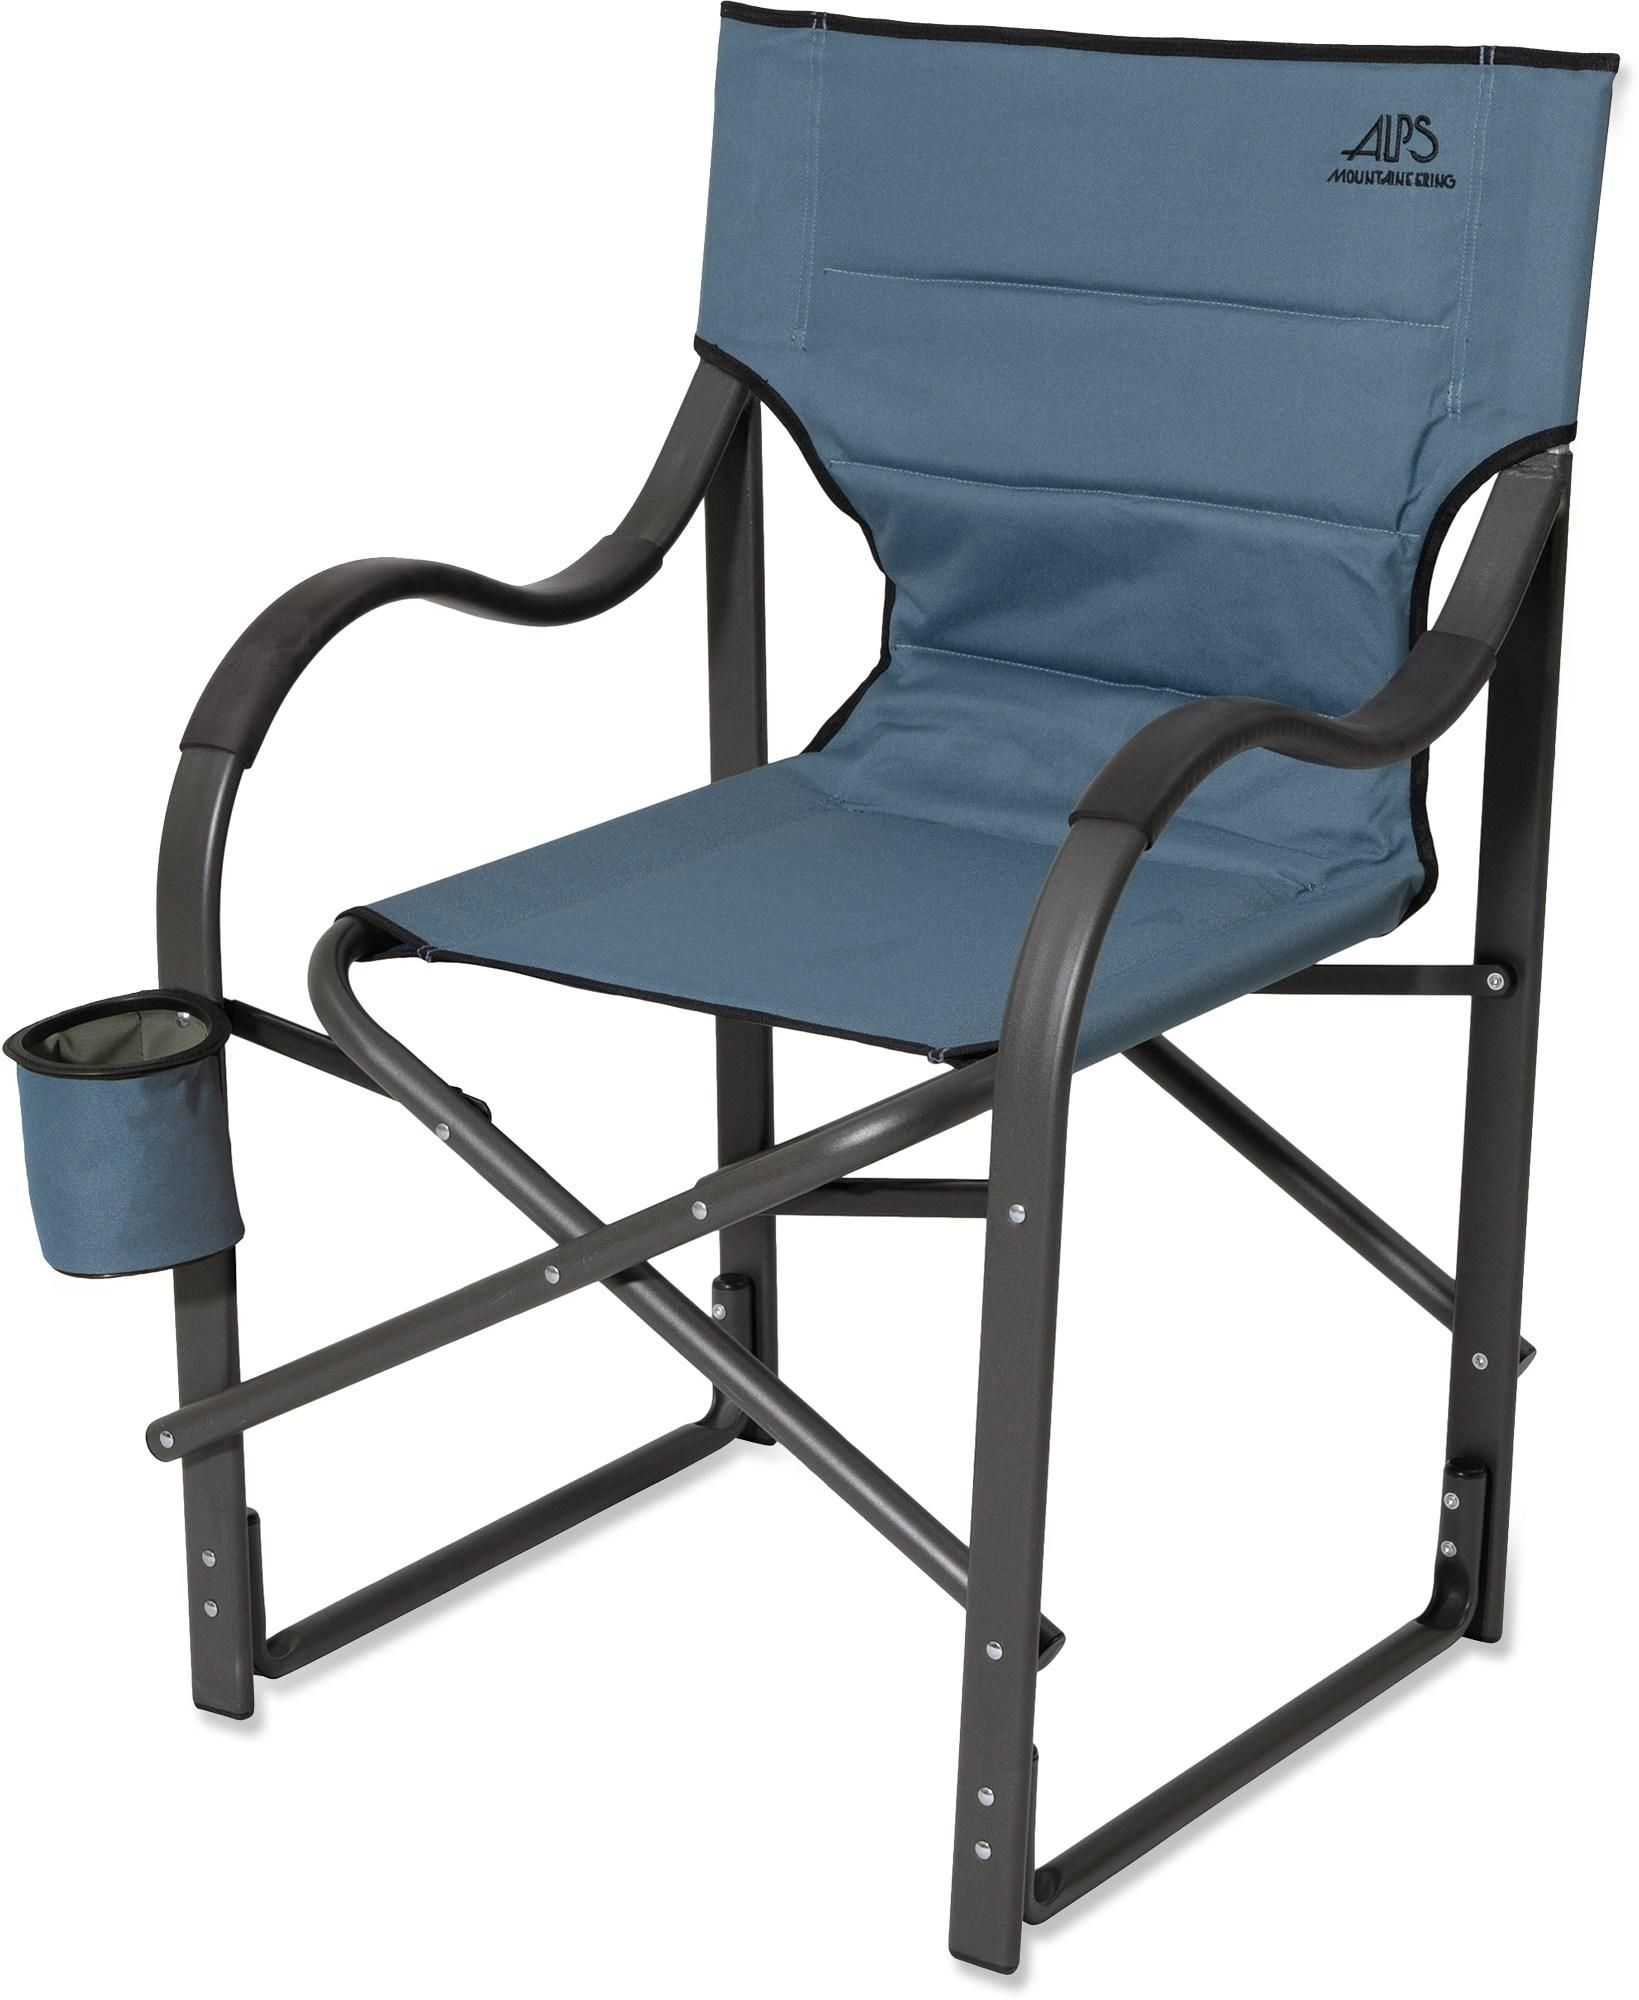 Sturdy Camping Chair At Rei Outlet A Sturdy Camp Chair With Armrests And A Cup Holder